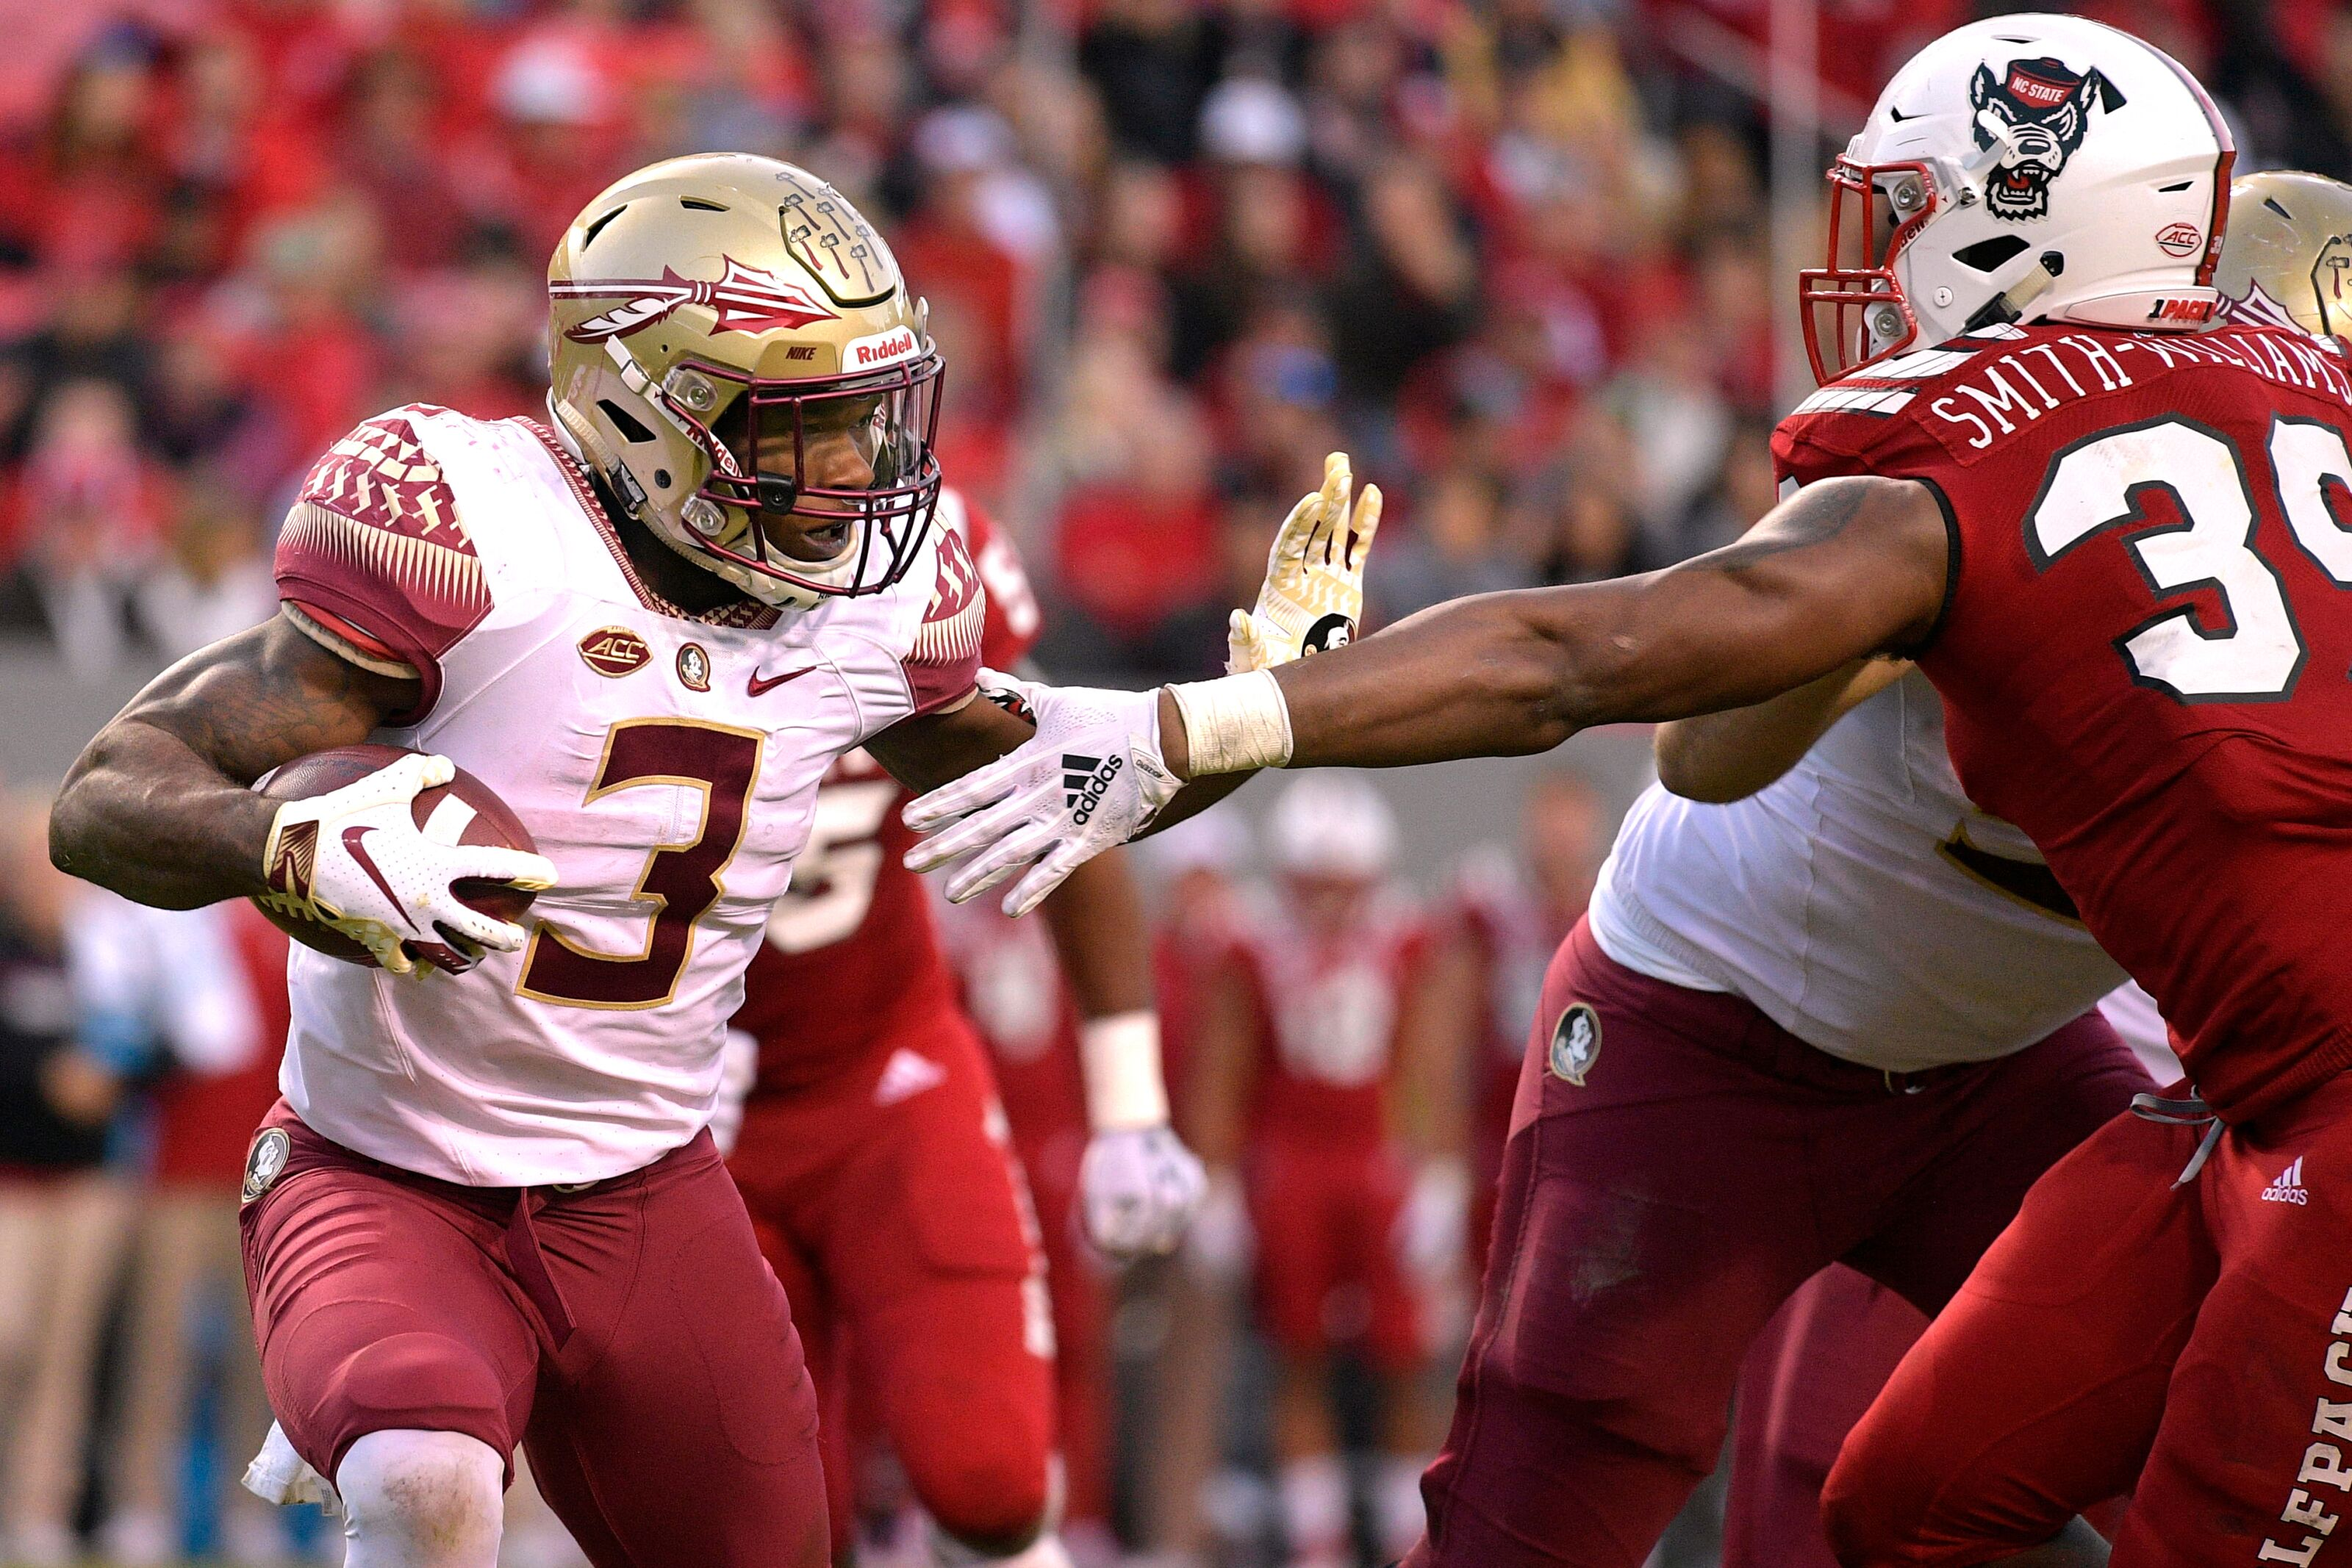 Best Fantasy Rb 2020 2020 NFL Draft: FSU RB Cam Akers scouting report